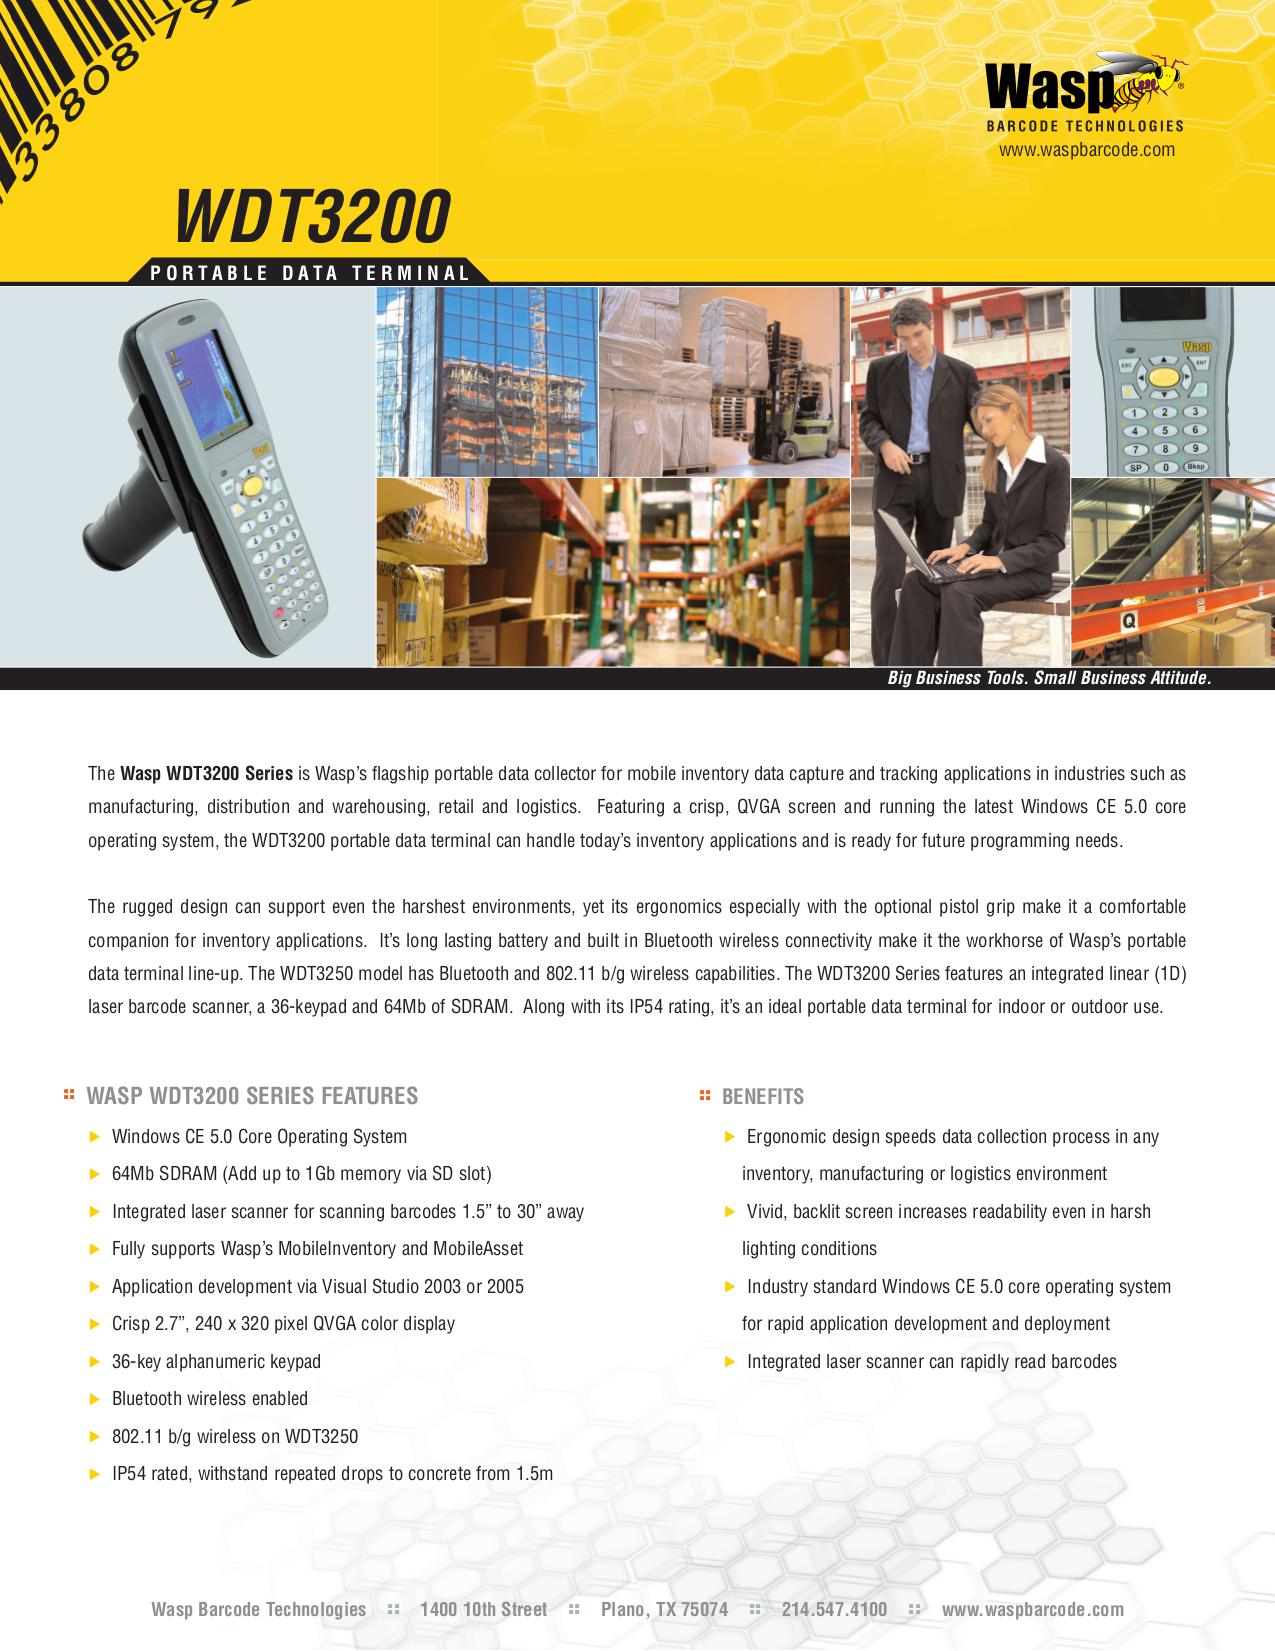 pdf for Wasp Other WDT3200 Data Terminal manual